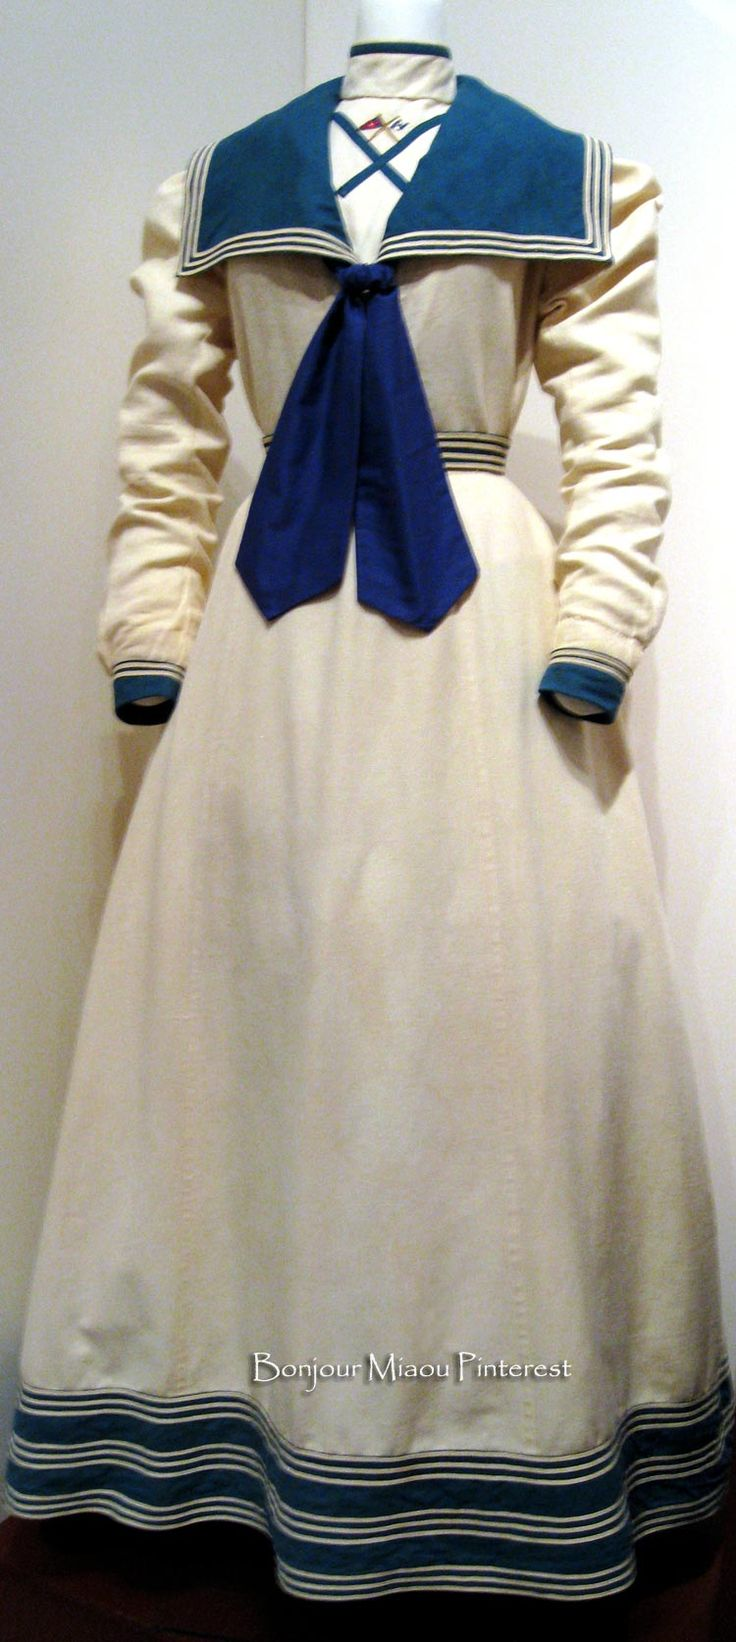 Middy dress, American, 1897. Linen and cotton embroidered with the New York Yacht Club insignia. Preservation Society of Newport County via Laurie Gorelick Interiors blog.